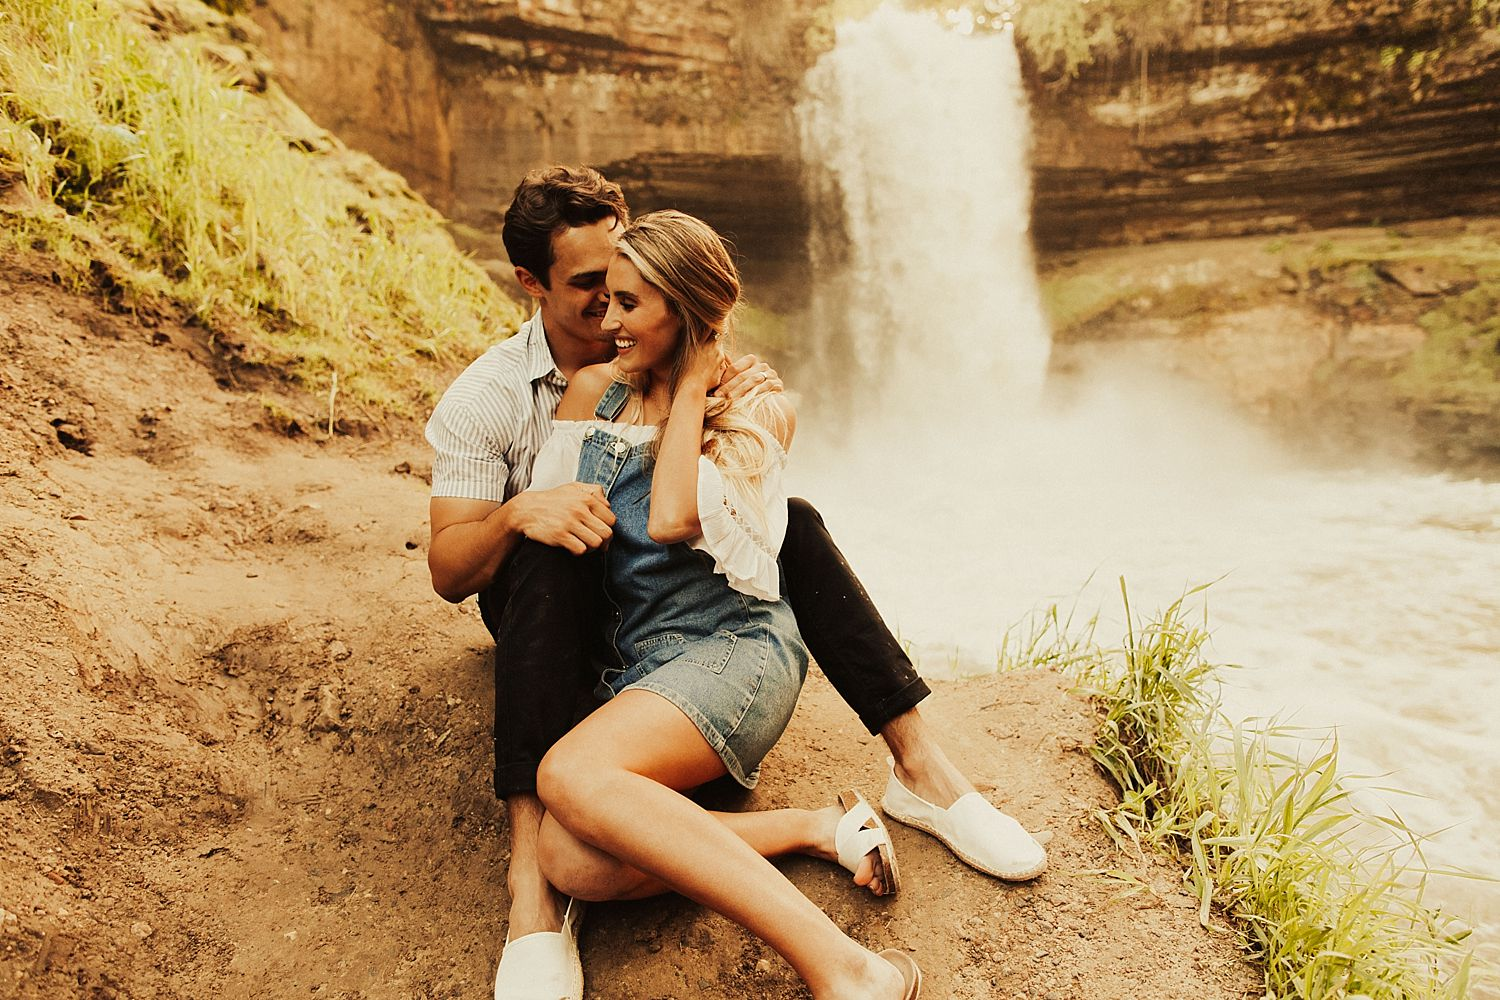 minnehaha-falls-minnesota-couples-shoot_2480.jpg